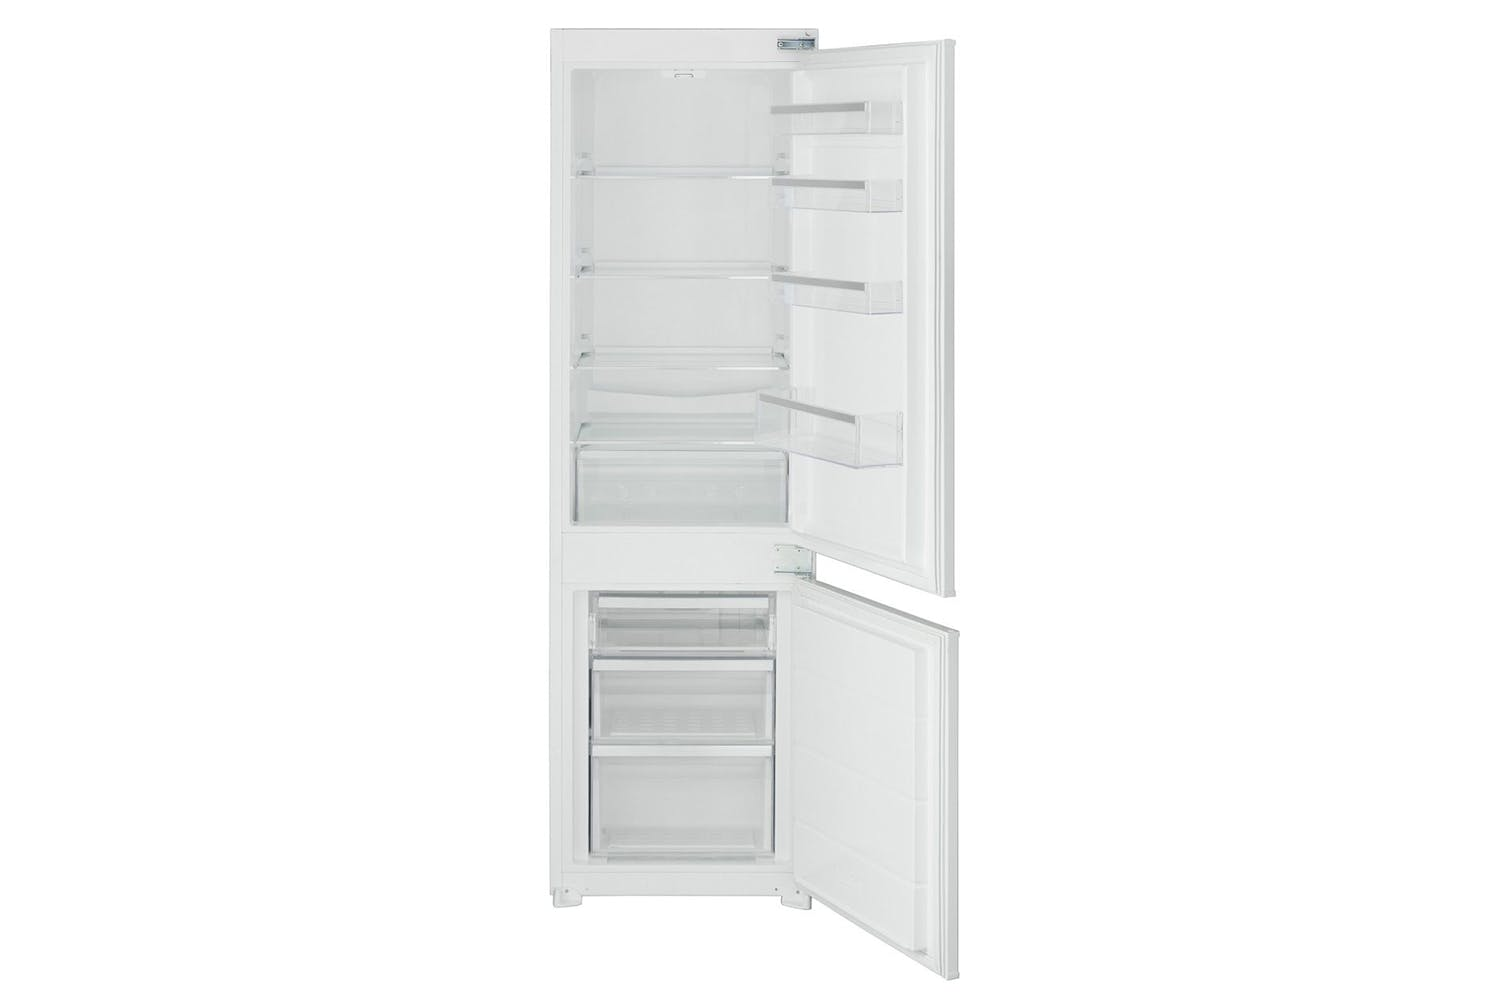 Belling Integrated Fridge Freezer | BIFF7030E